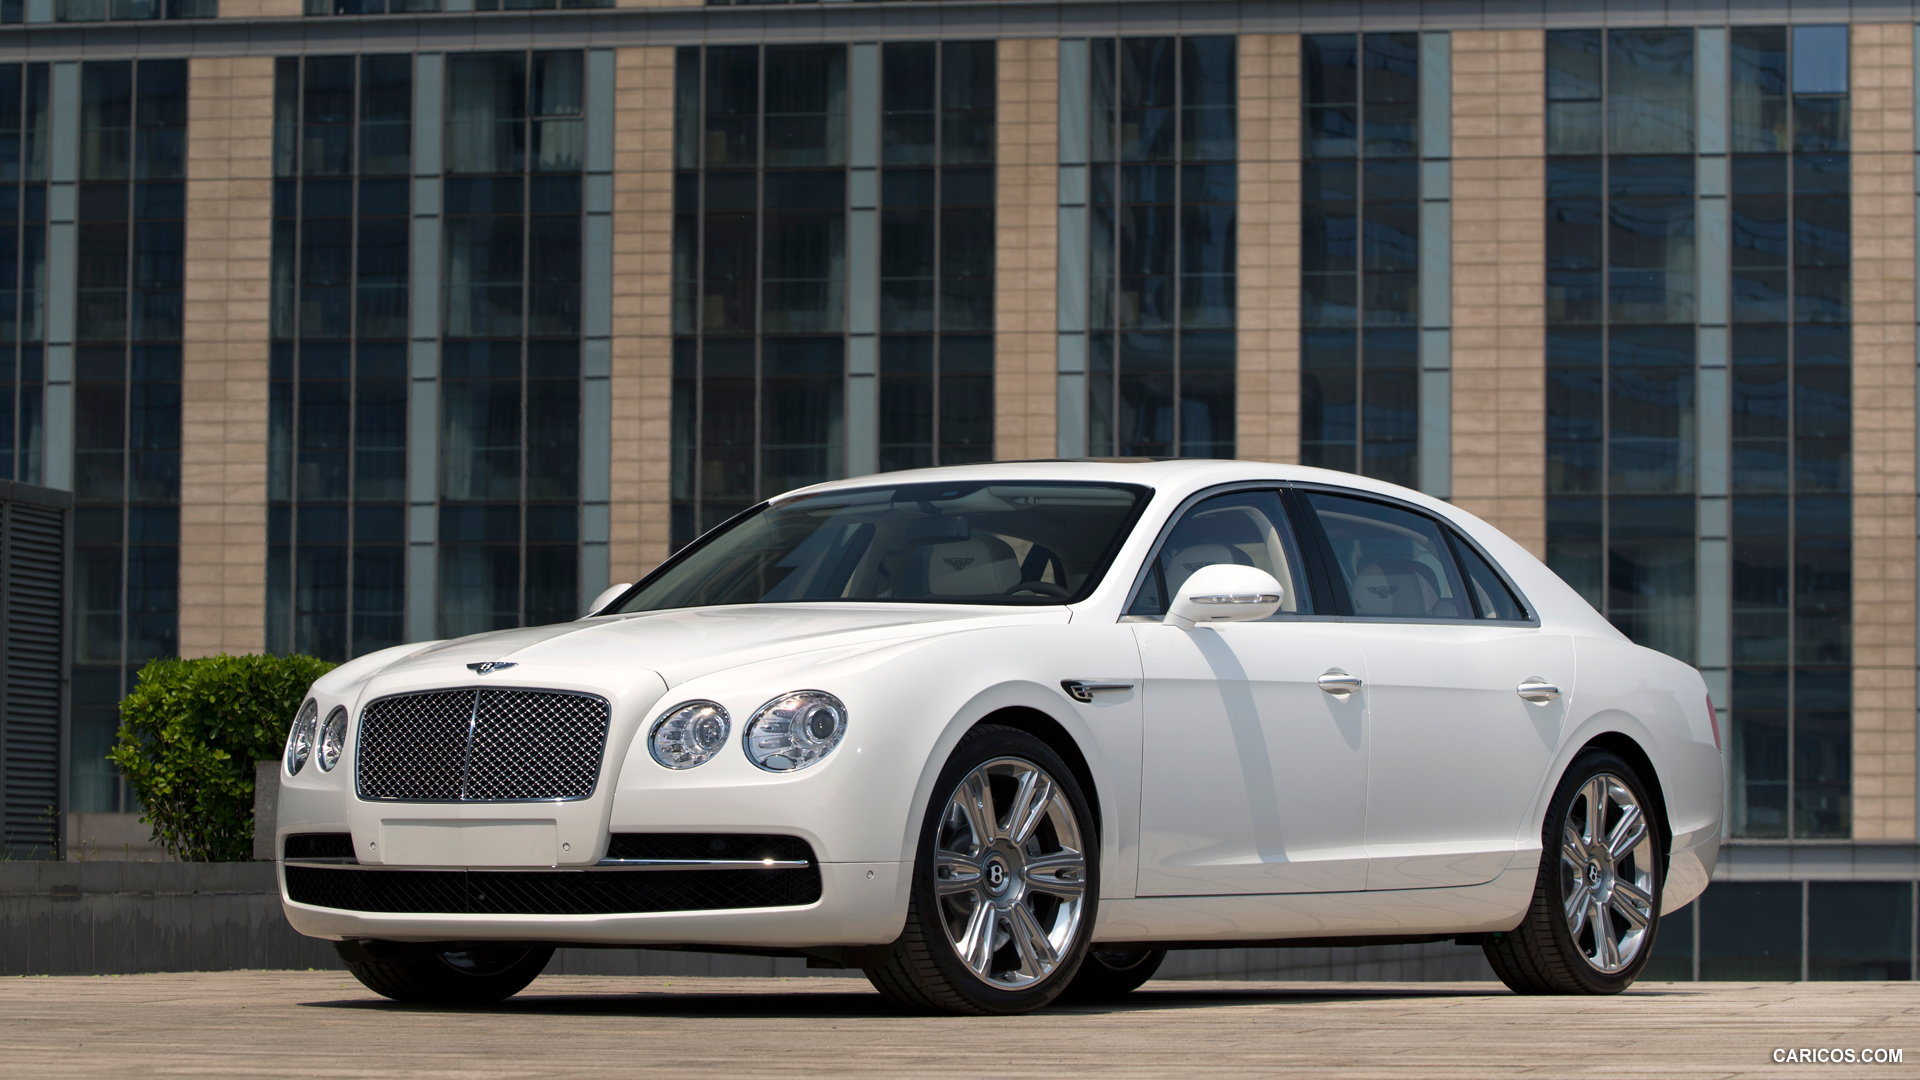 2014 Bentley Flying Spur Glacier White   Front HD Wallpaper 49 1920x1080